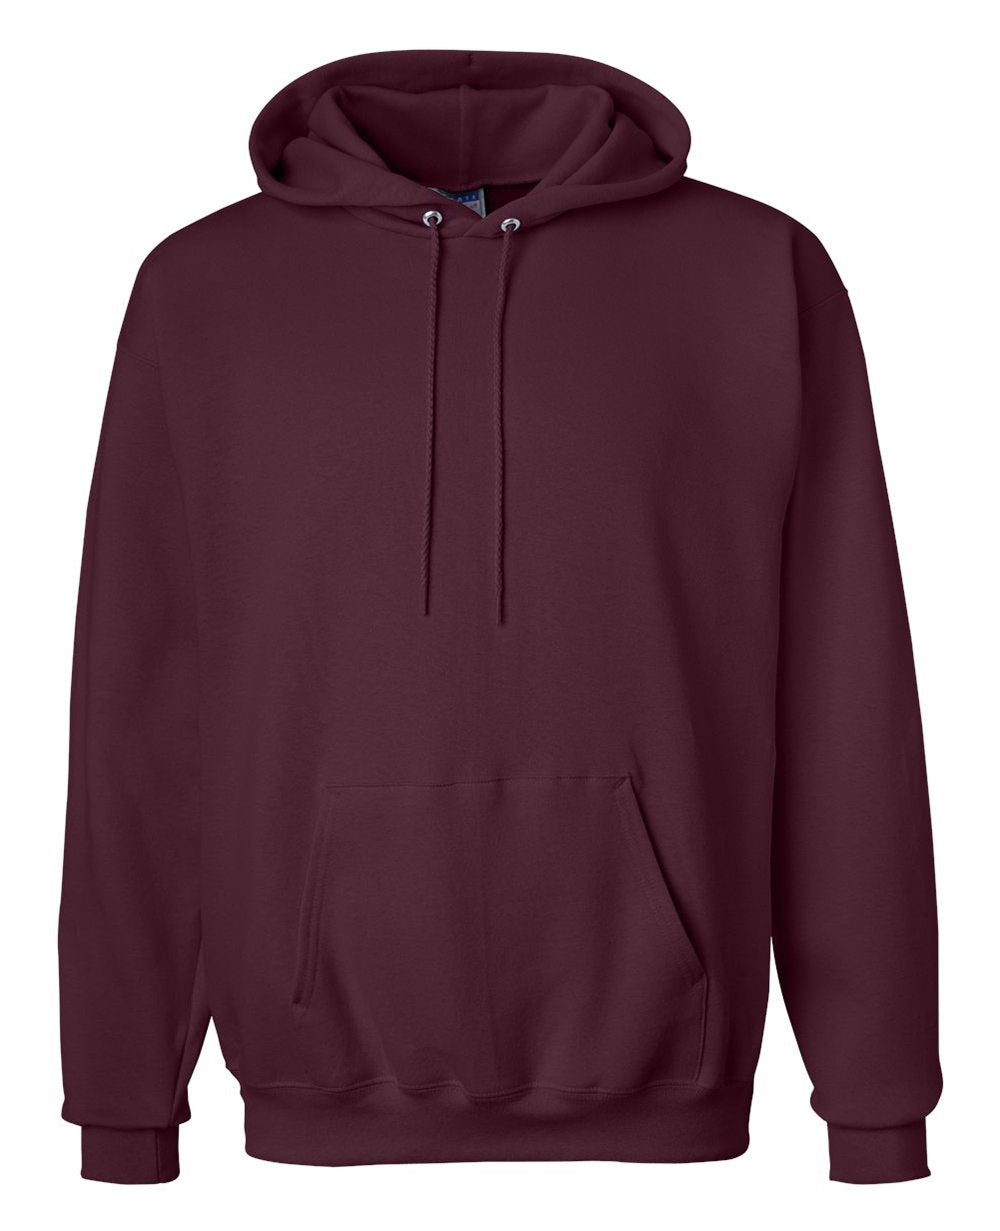 Pullover Hoodies in Maroon